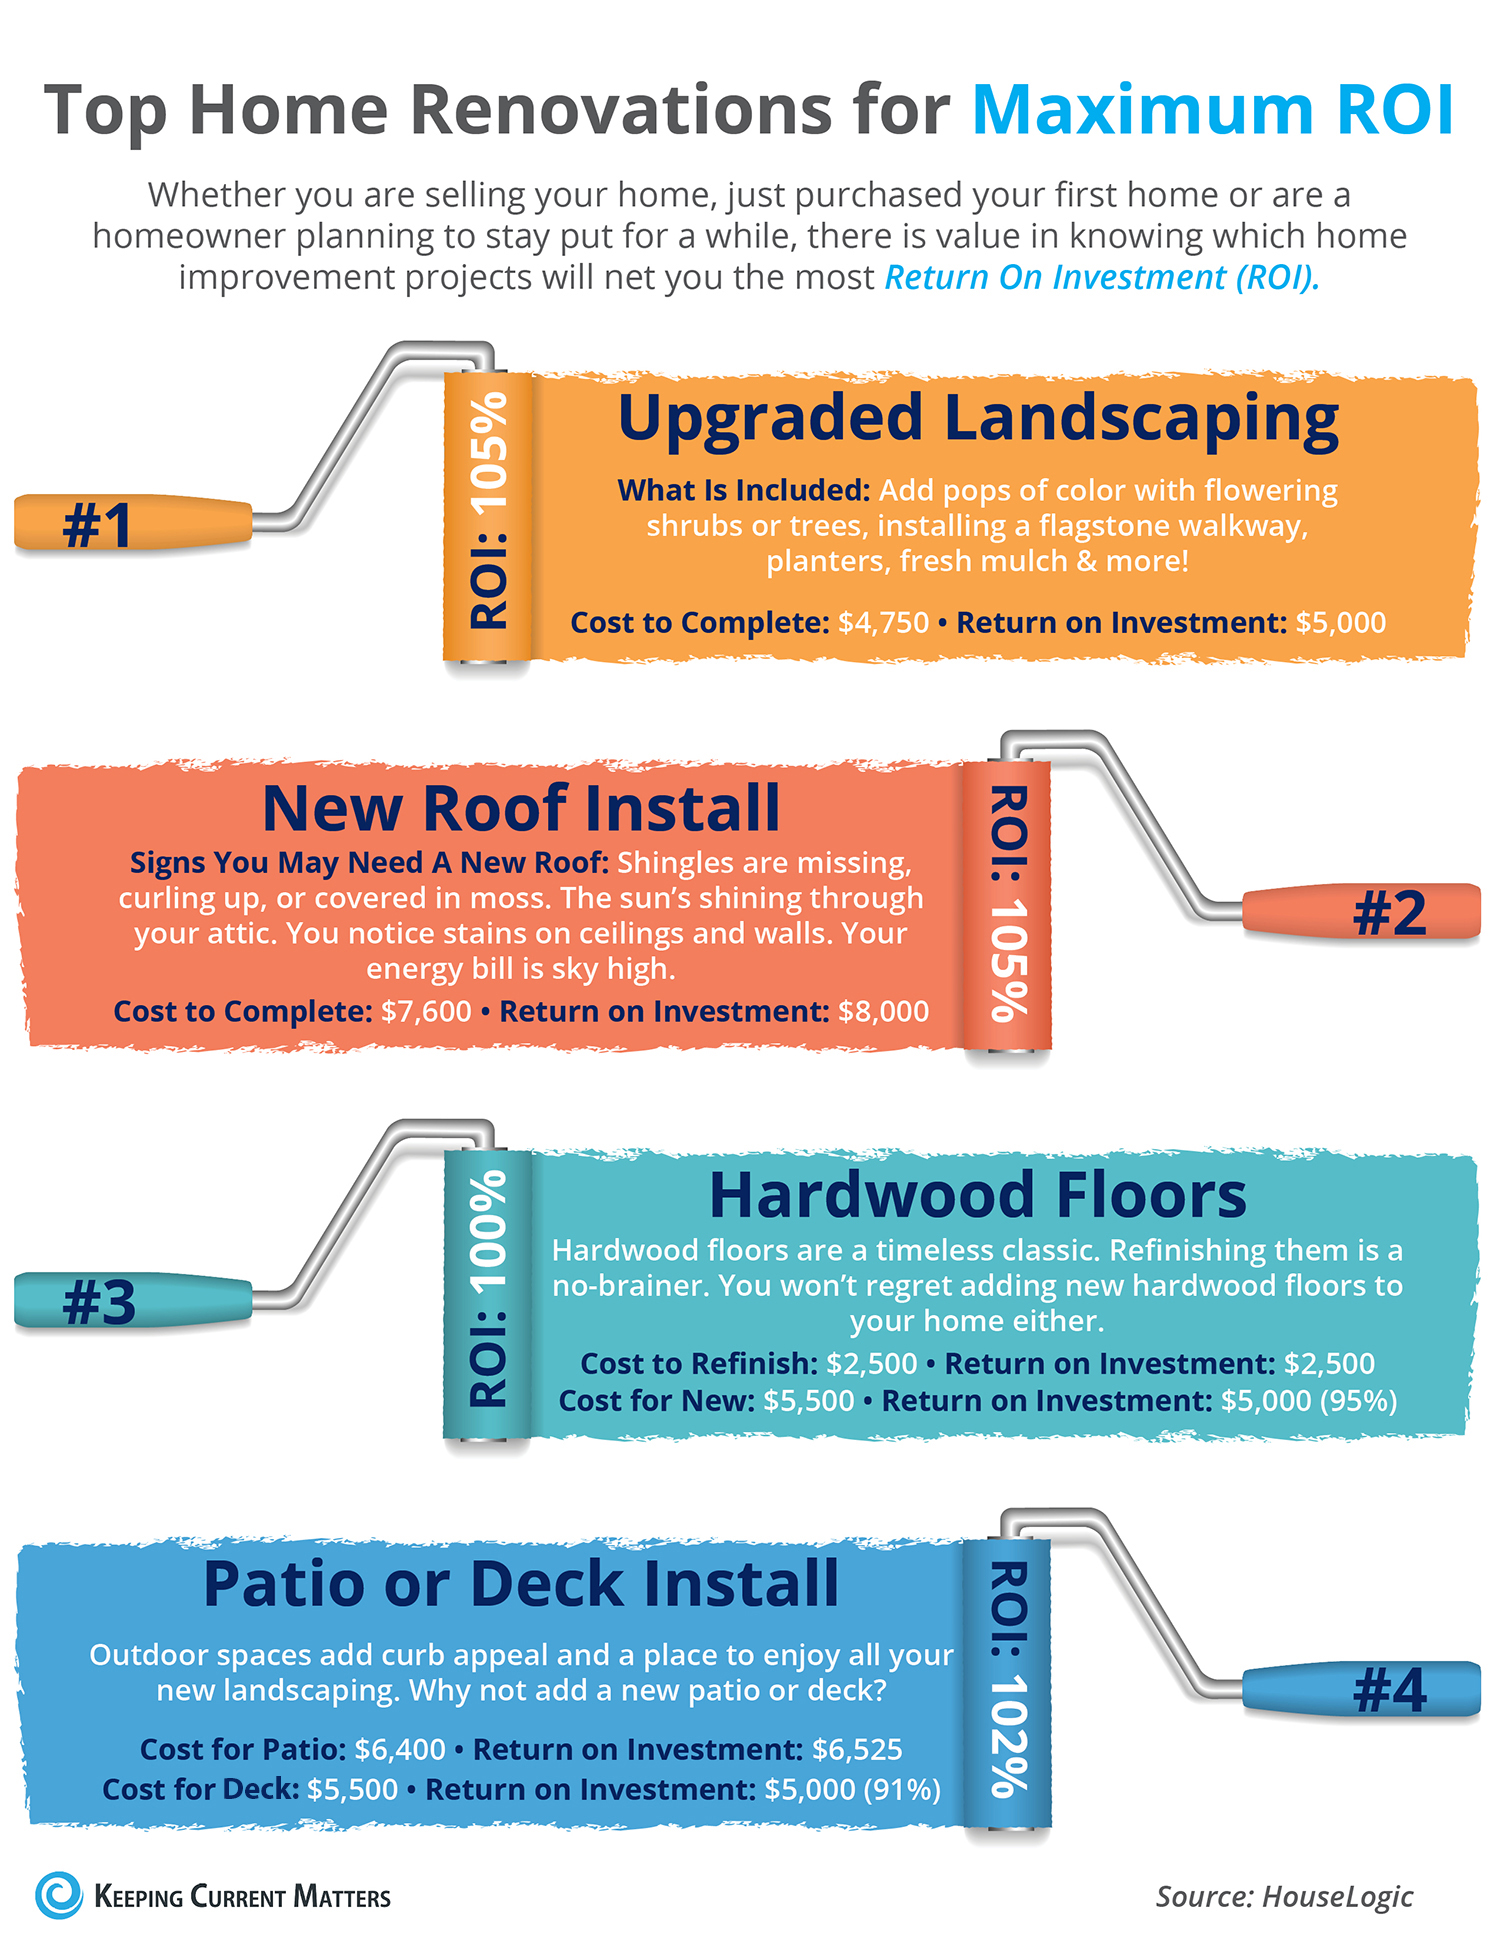 Top Home Renovations for Maximum ROI [INFOGRAPHIC] | Keeping Current Matters